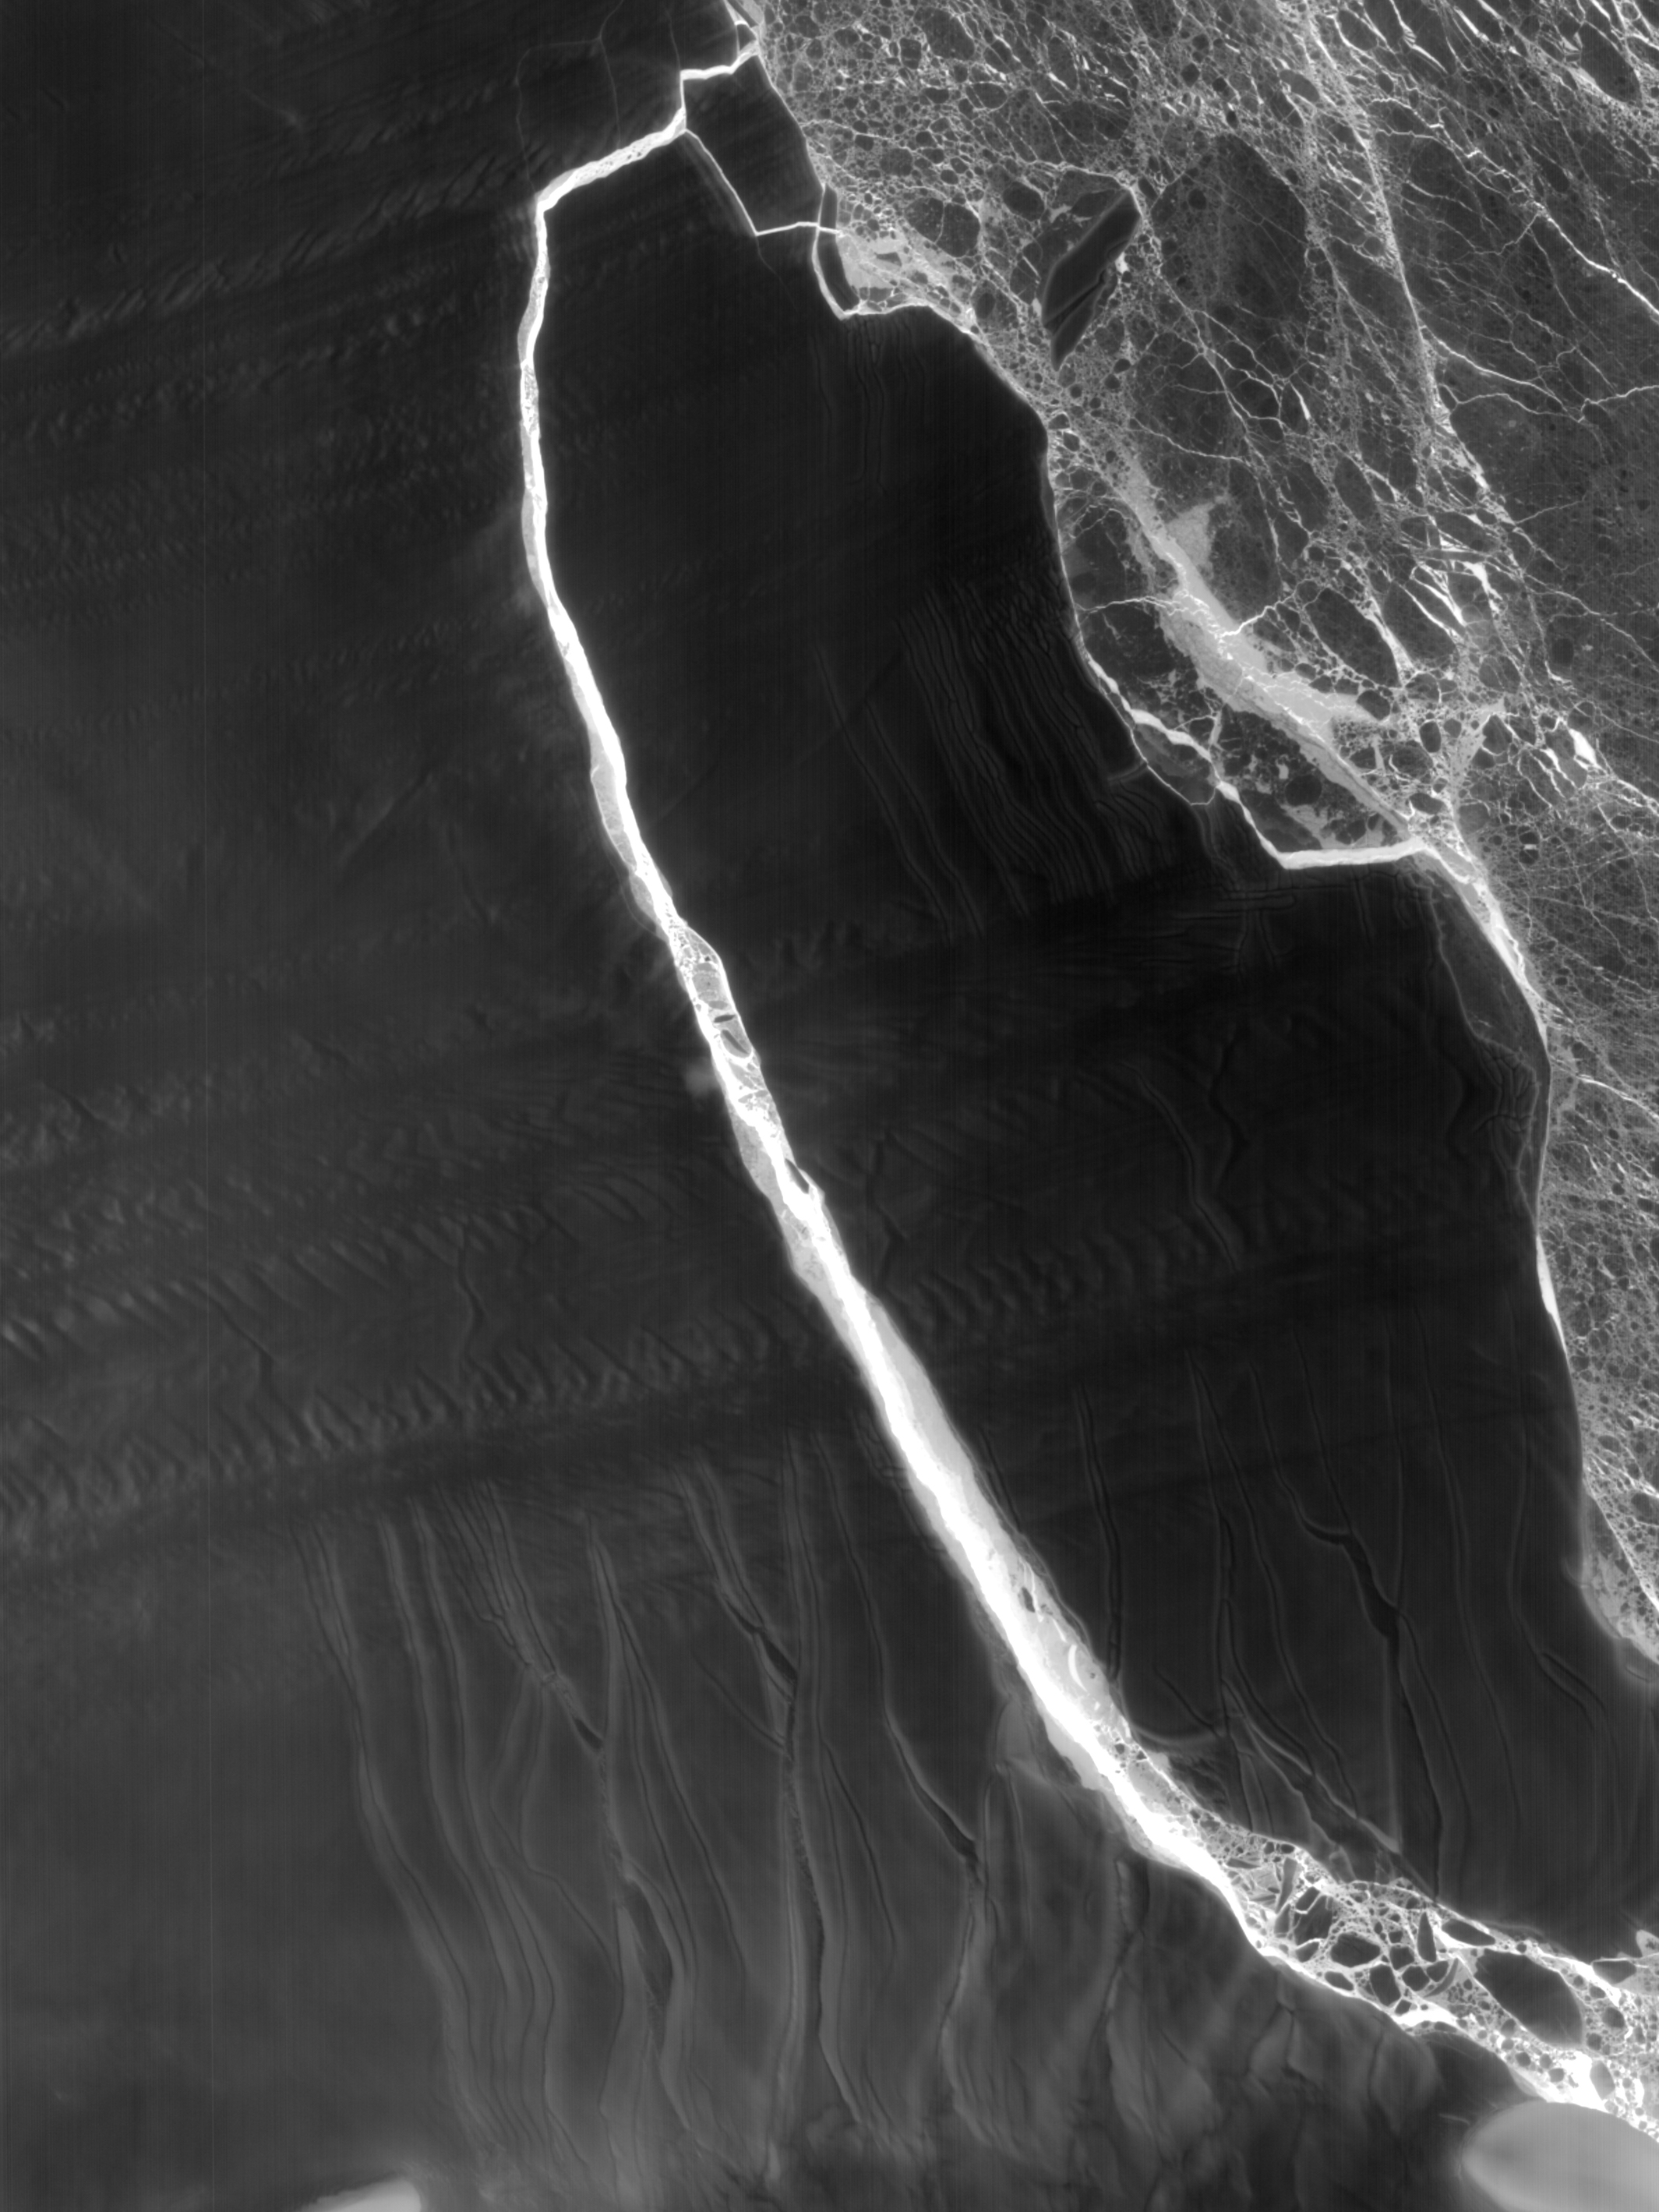 Today's Image of the Day comes thanks to the NASA Earth Observatory and features a look at the Larsen C iceberg beginning to breaking apart.